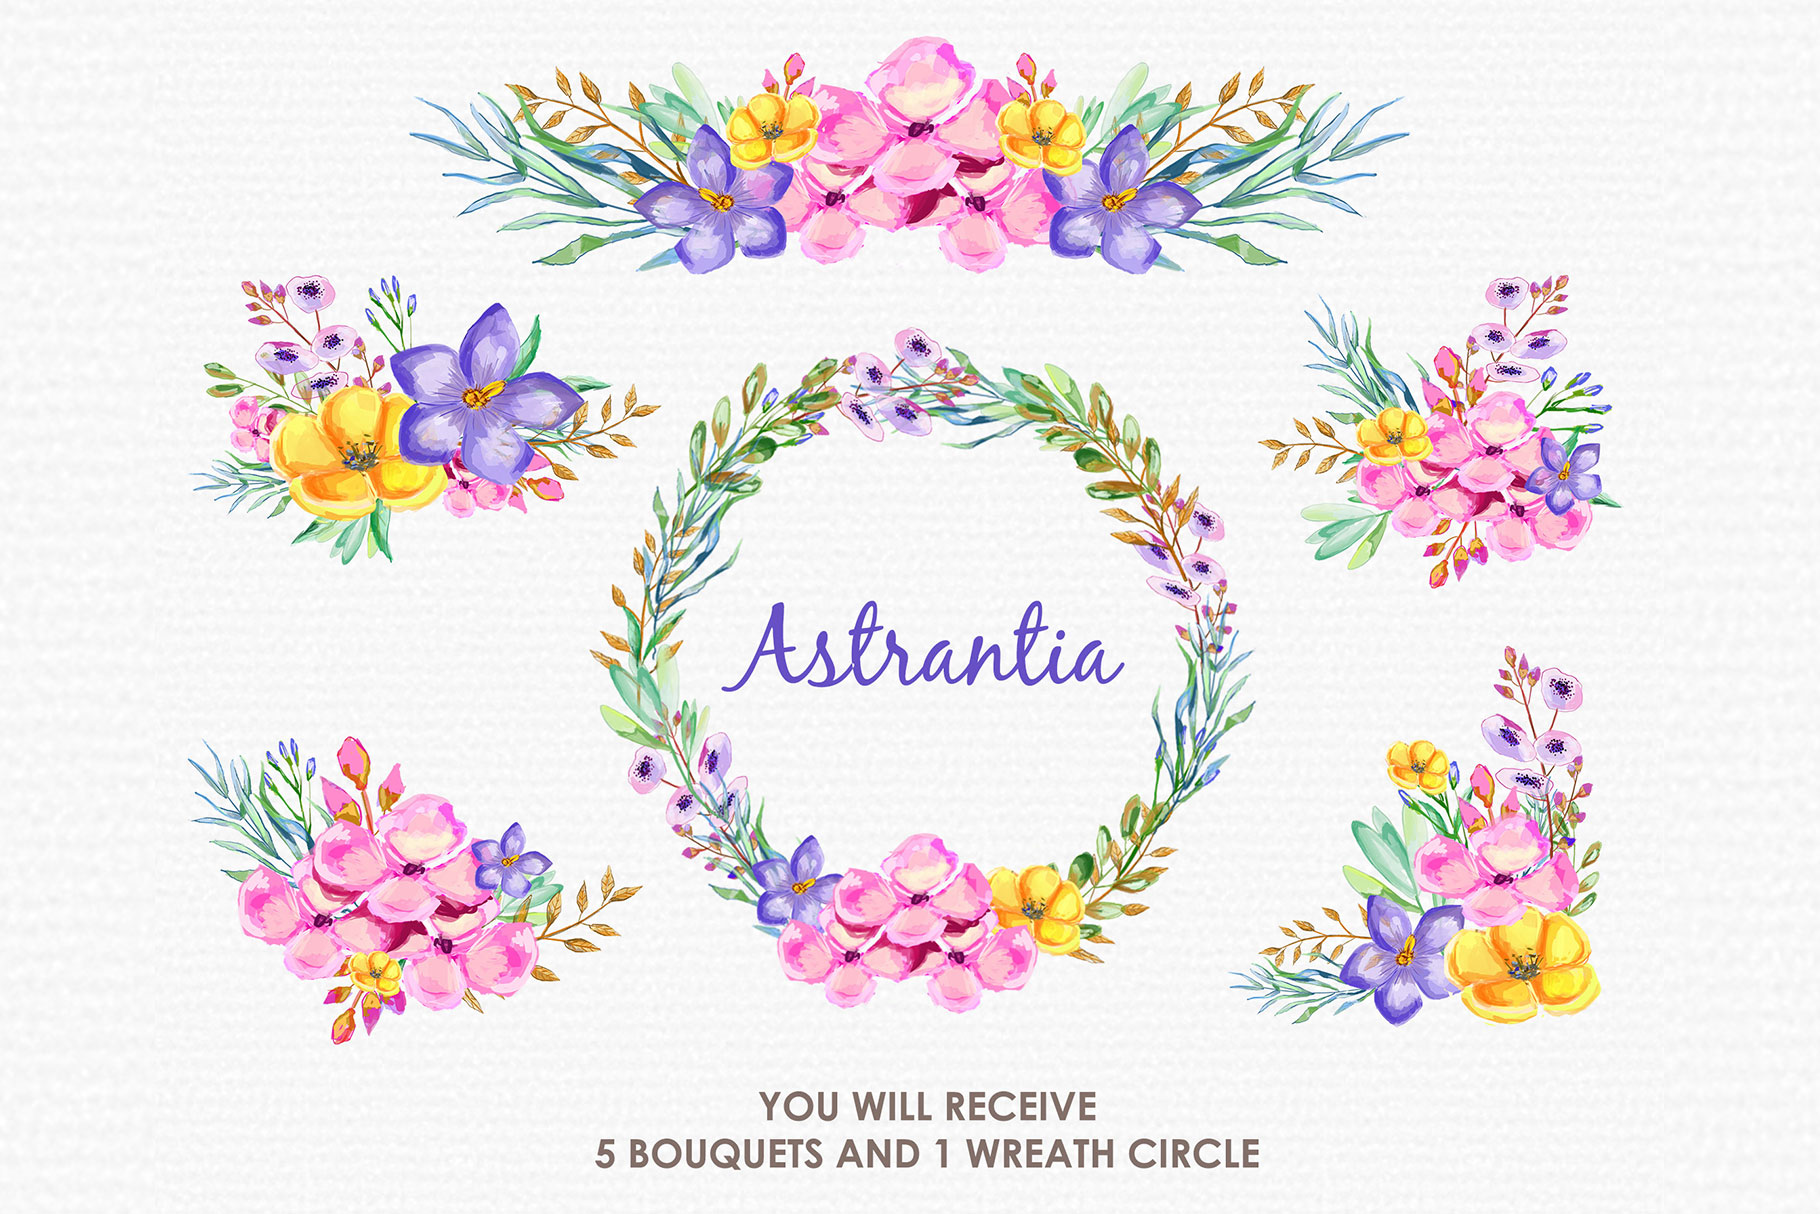 Astrantia - Digital Watercolor Floral Flower Style Clipart example image 3